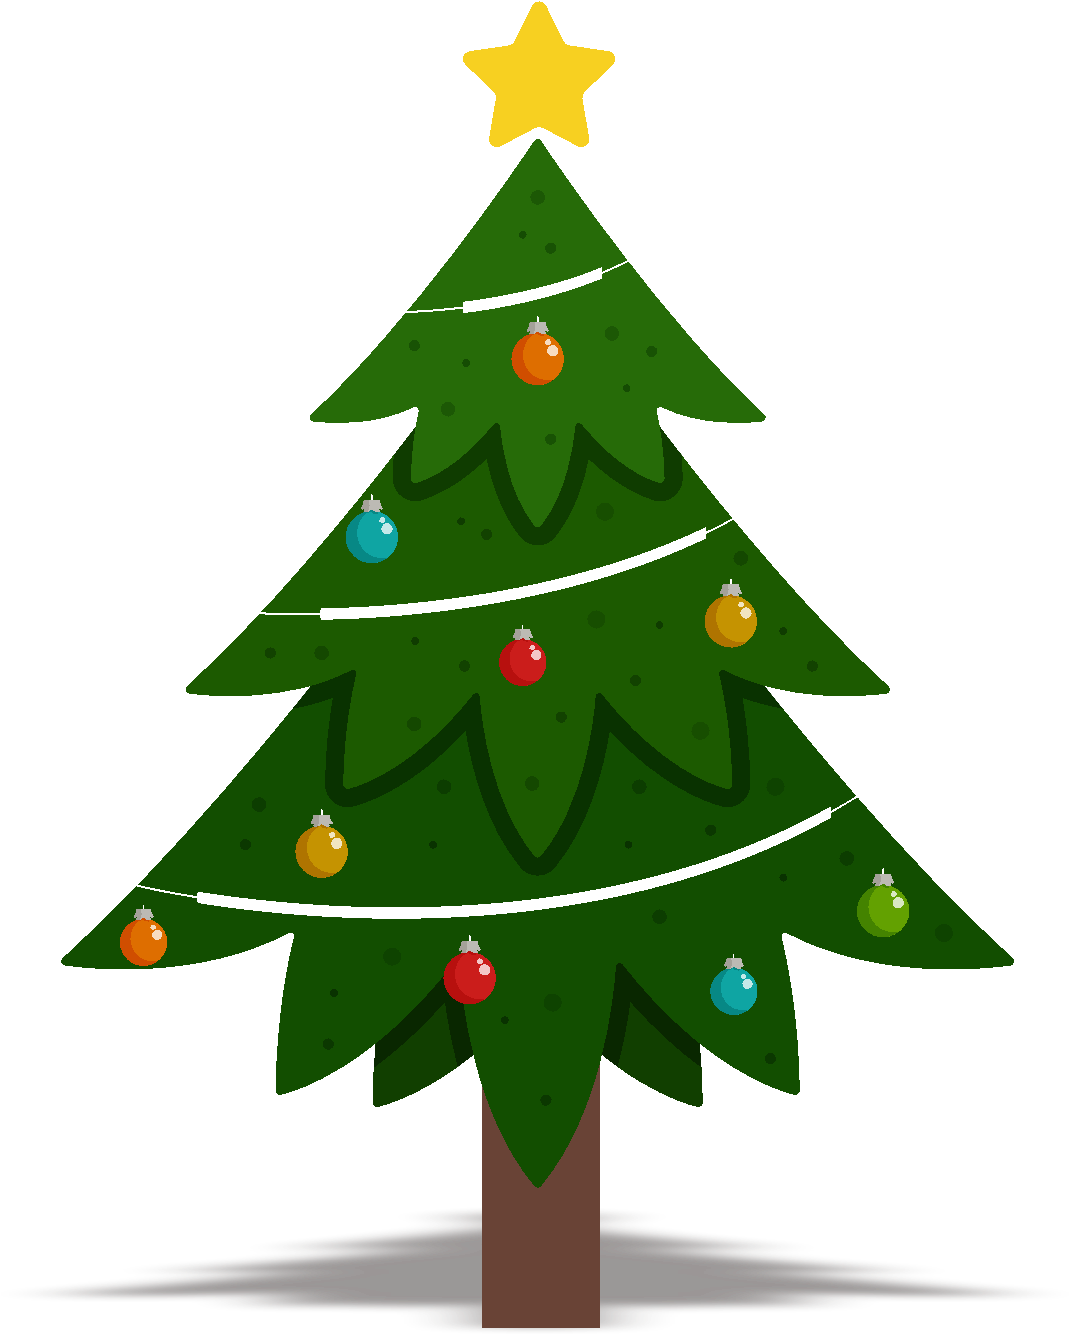 Christmas Tree Design Element Vector Png And Image - Plain ...